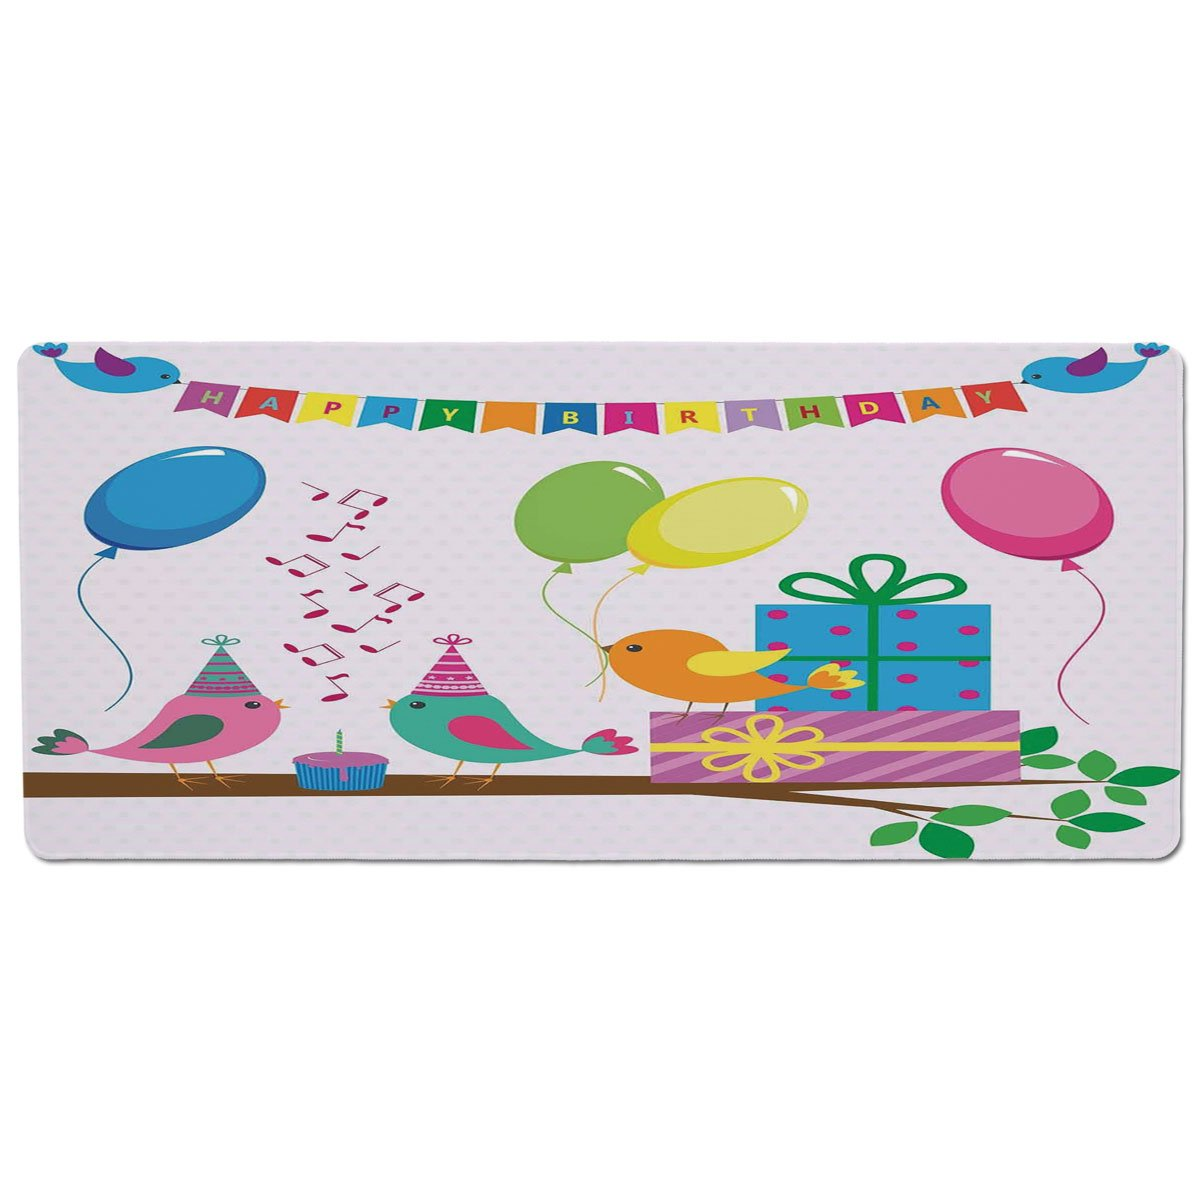 35.4\ iPrint Pet Mat for Food and Water,Birthday Decorations for Kids,Singing Birds Happy Birthday Song Flags Cone Hats Party Cake,Multicolor,Rectangle Non-Slip Rubber Mat for Dogs and Cats